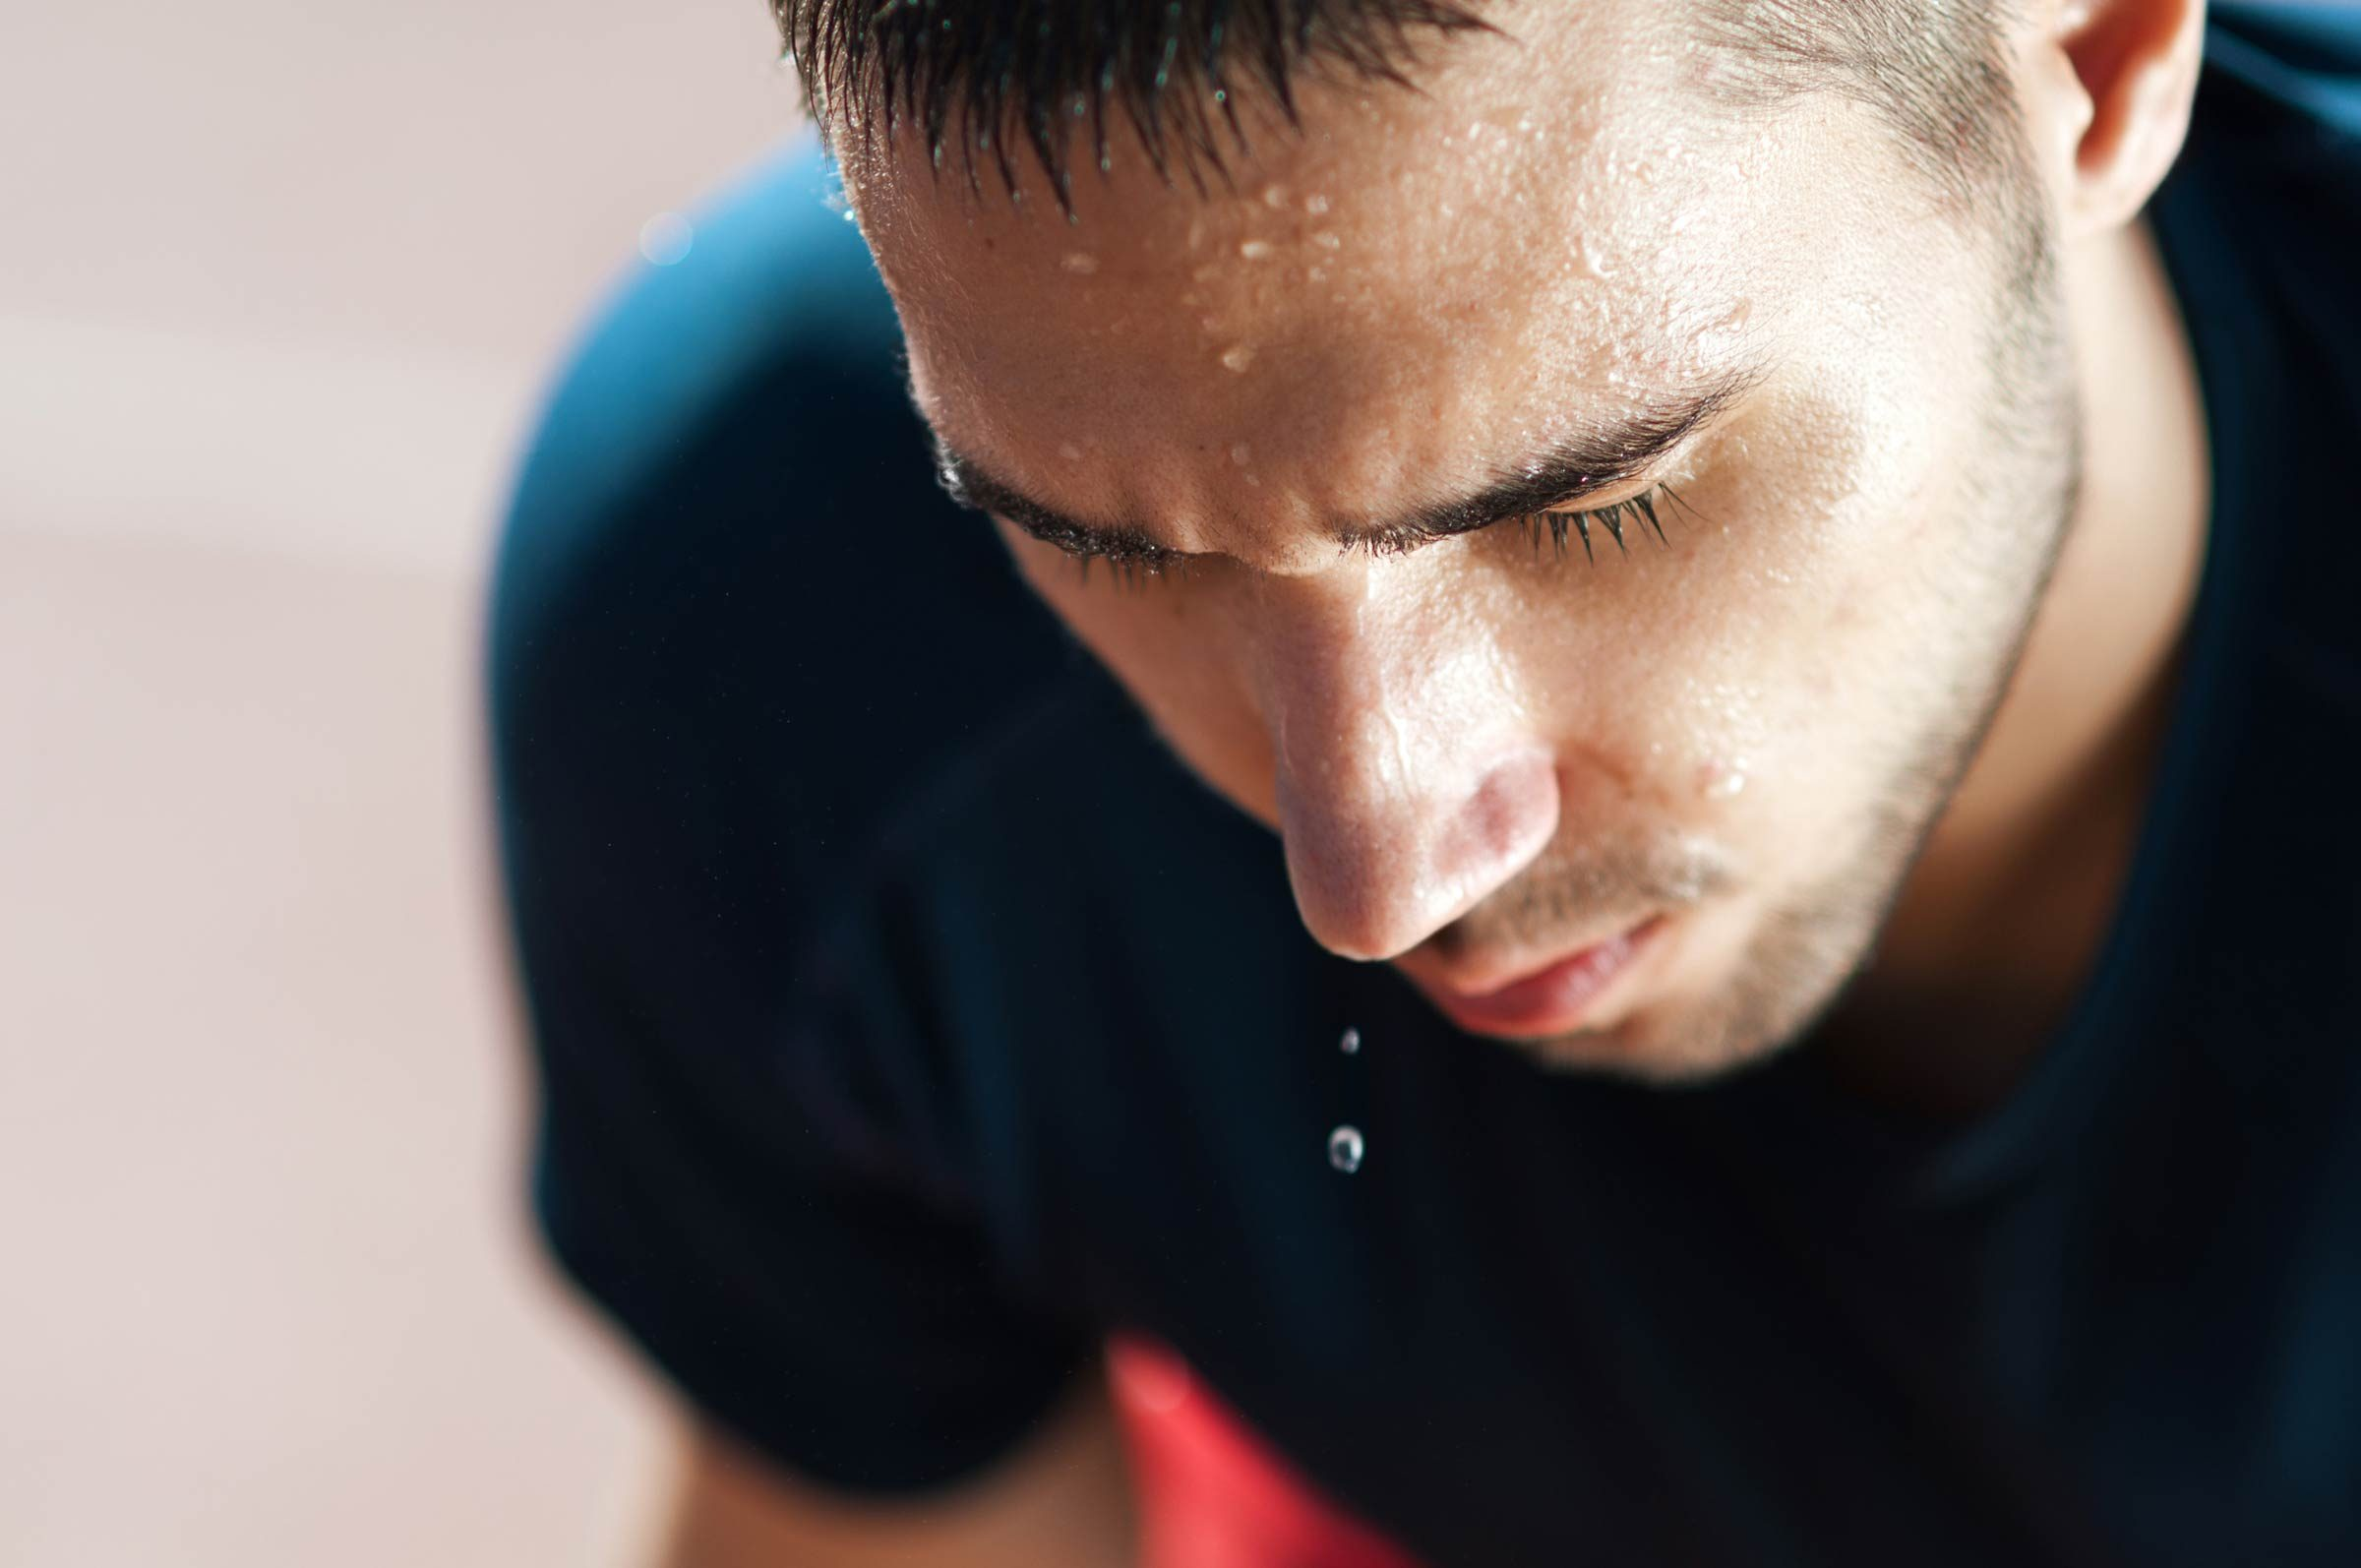 Man's face drenched in sweat